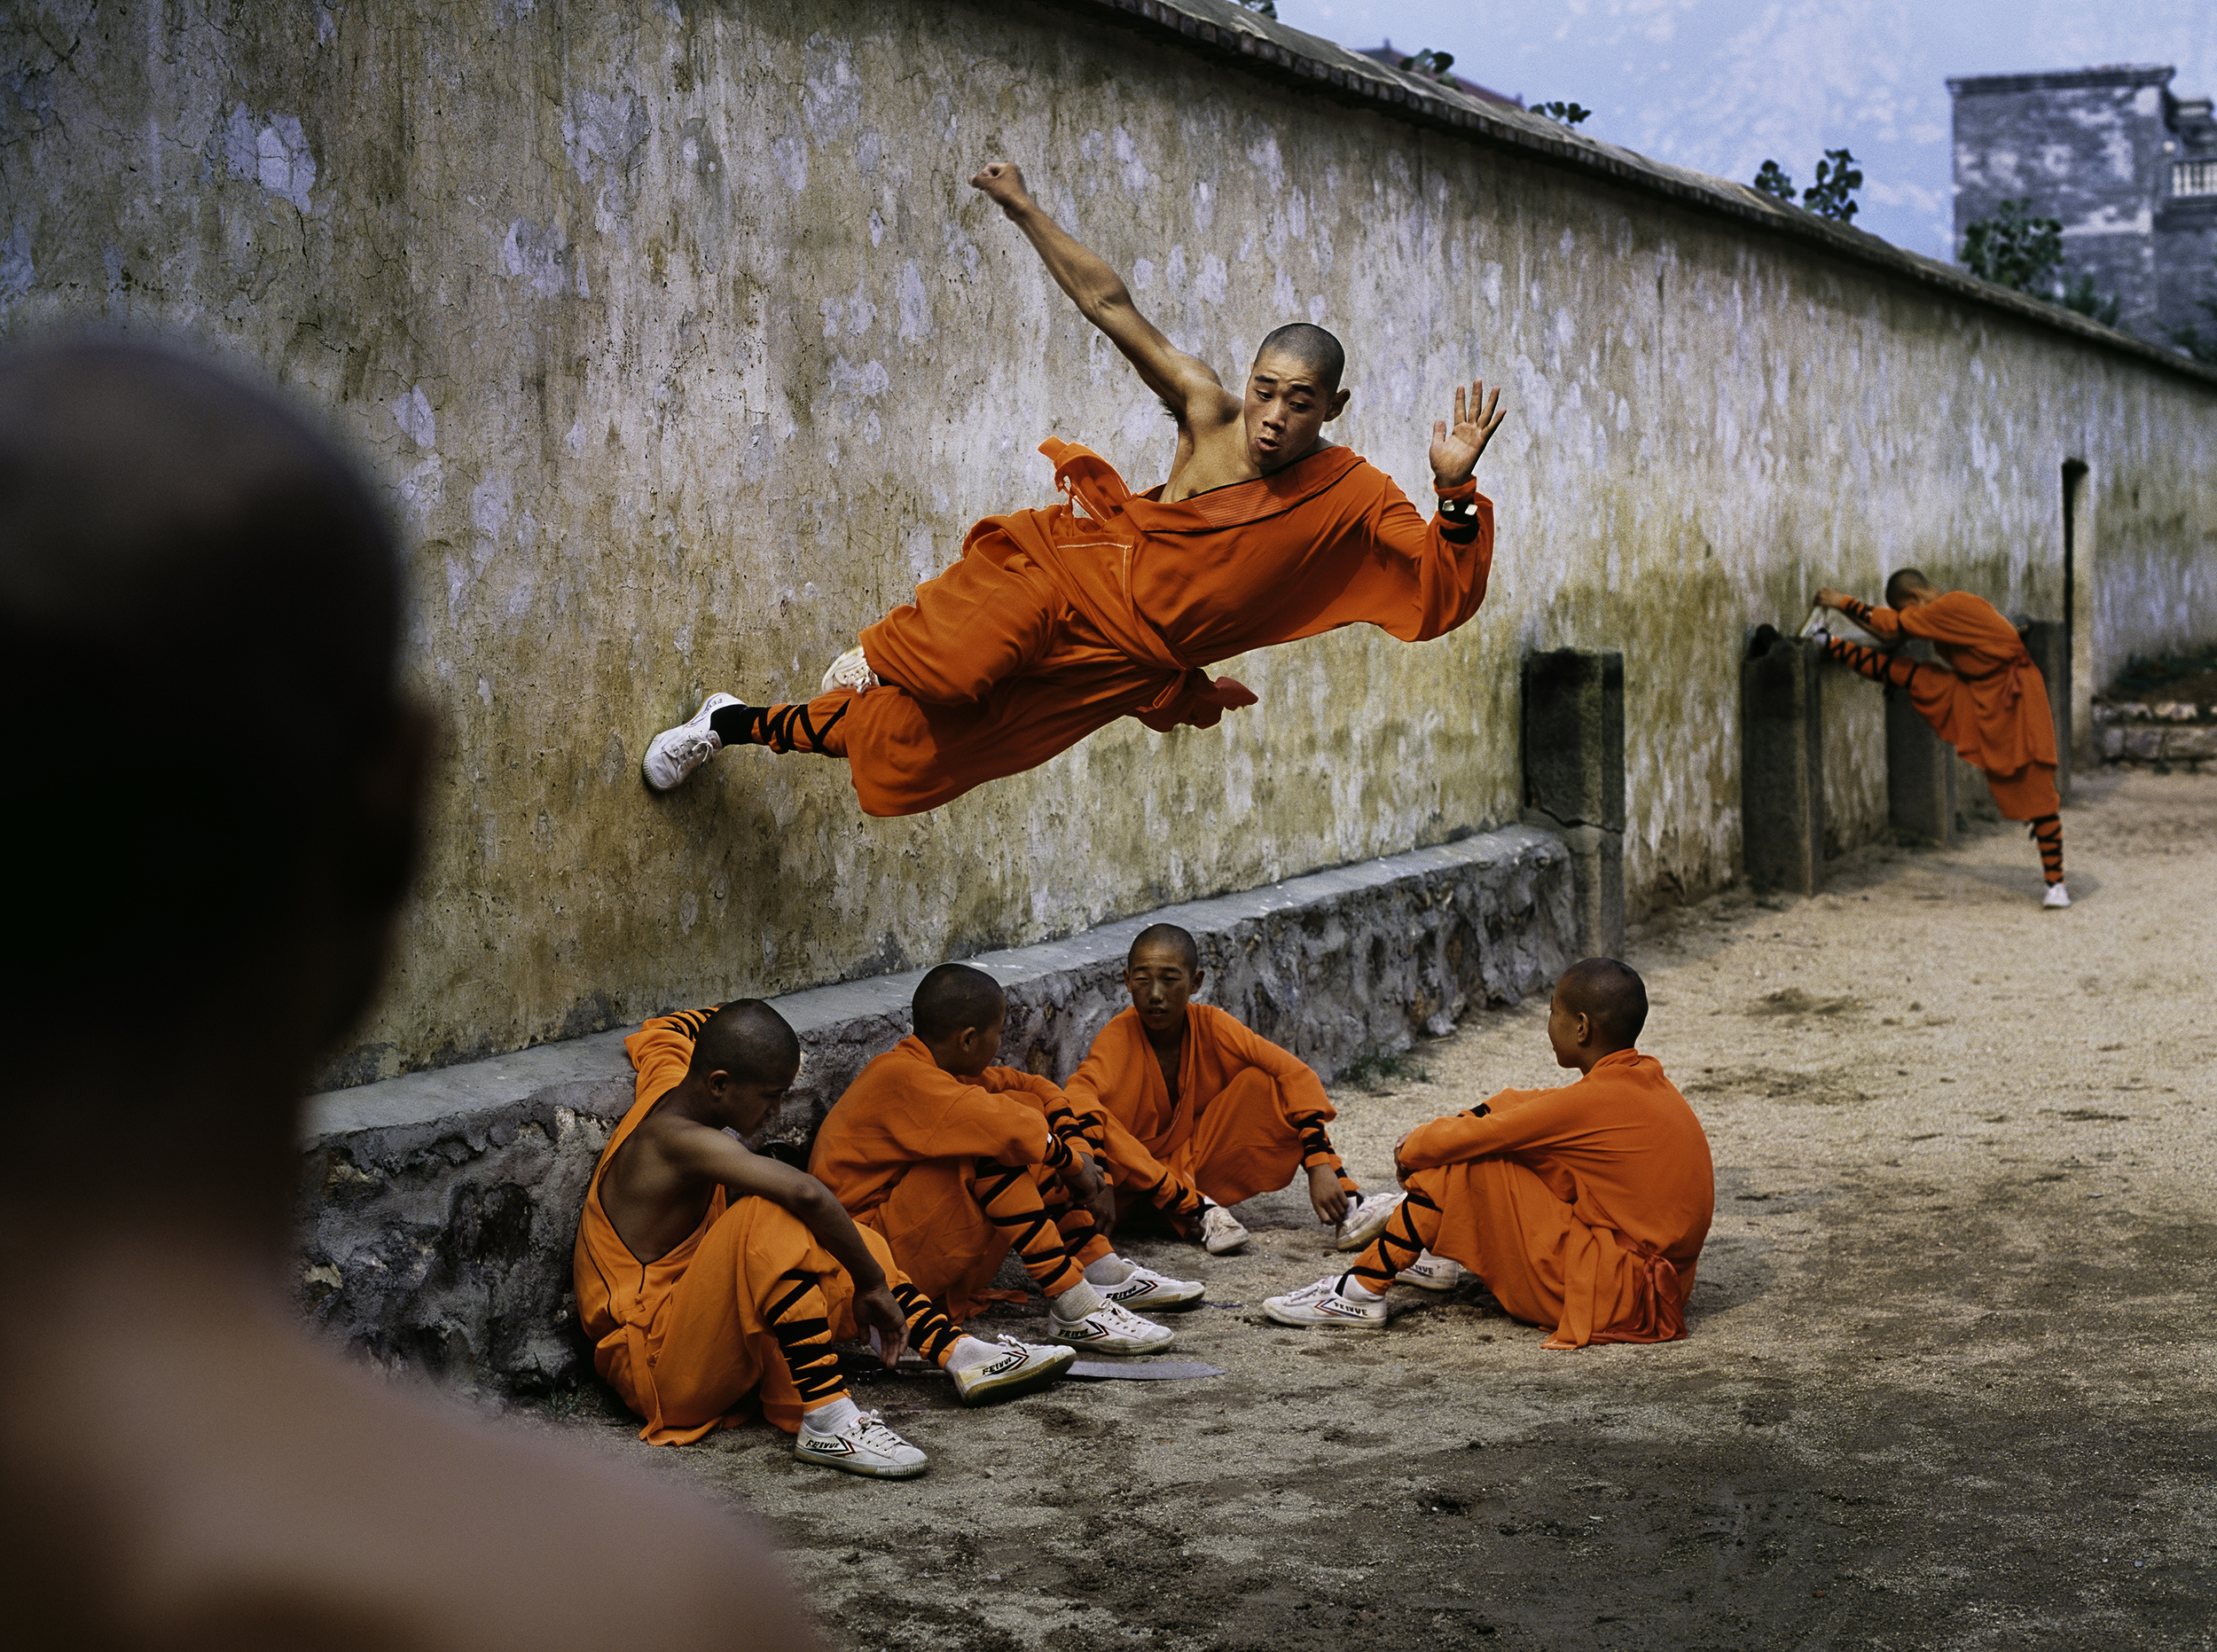 Image above: ©Steve McCurryA young monk runs along the wall over his peers at the Shaolin Monastery in Henan Province, China, 2004, ultrachrome print